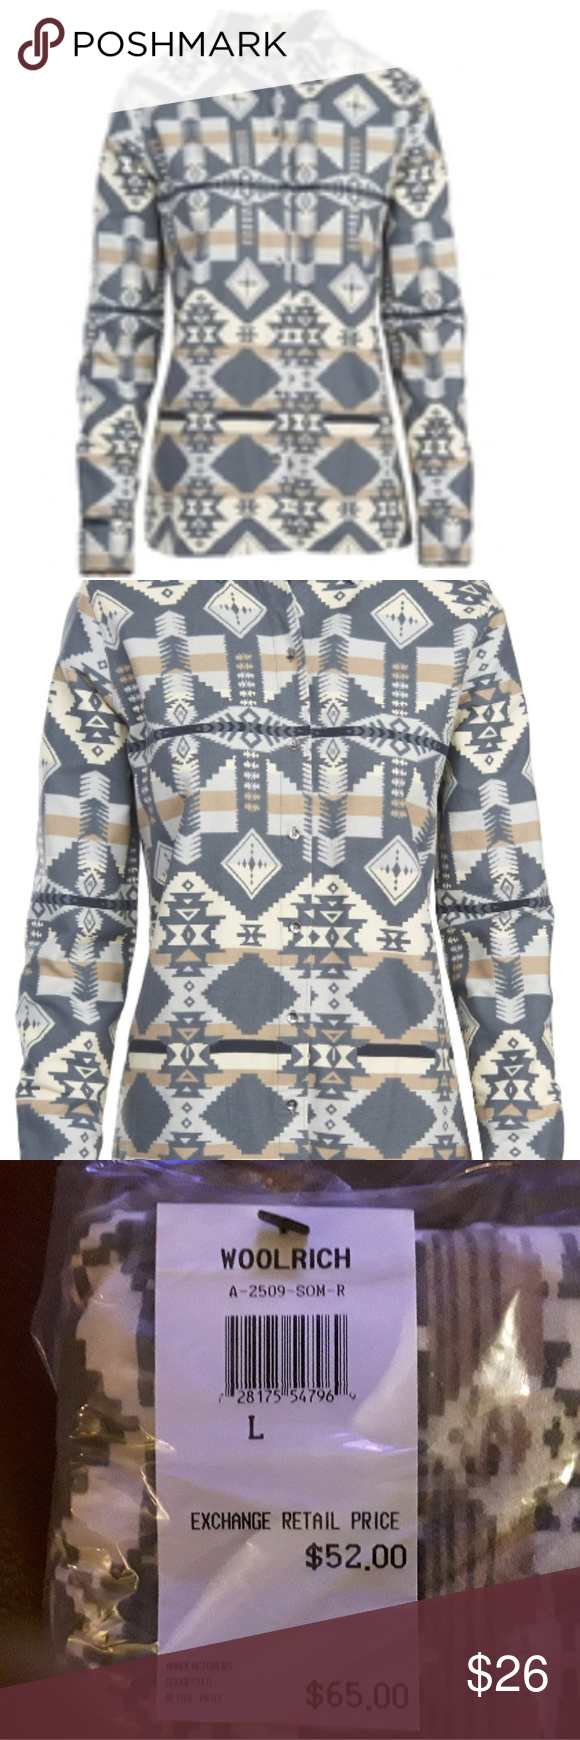 f4276db3 Woolrich Keystone Printed Chamois Shirt Color: Dark Ash Made from soft,  100% cotton